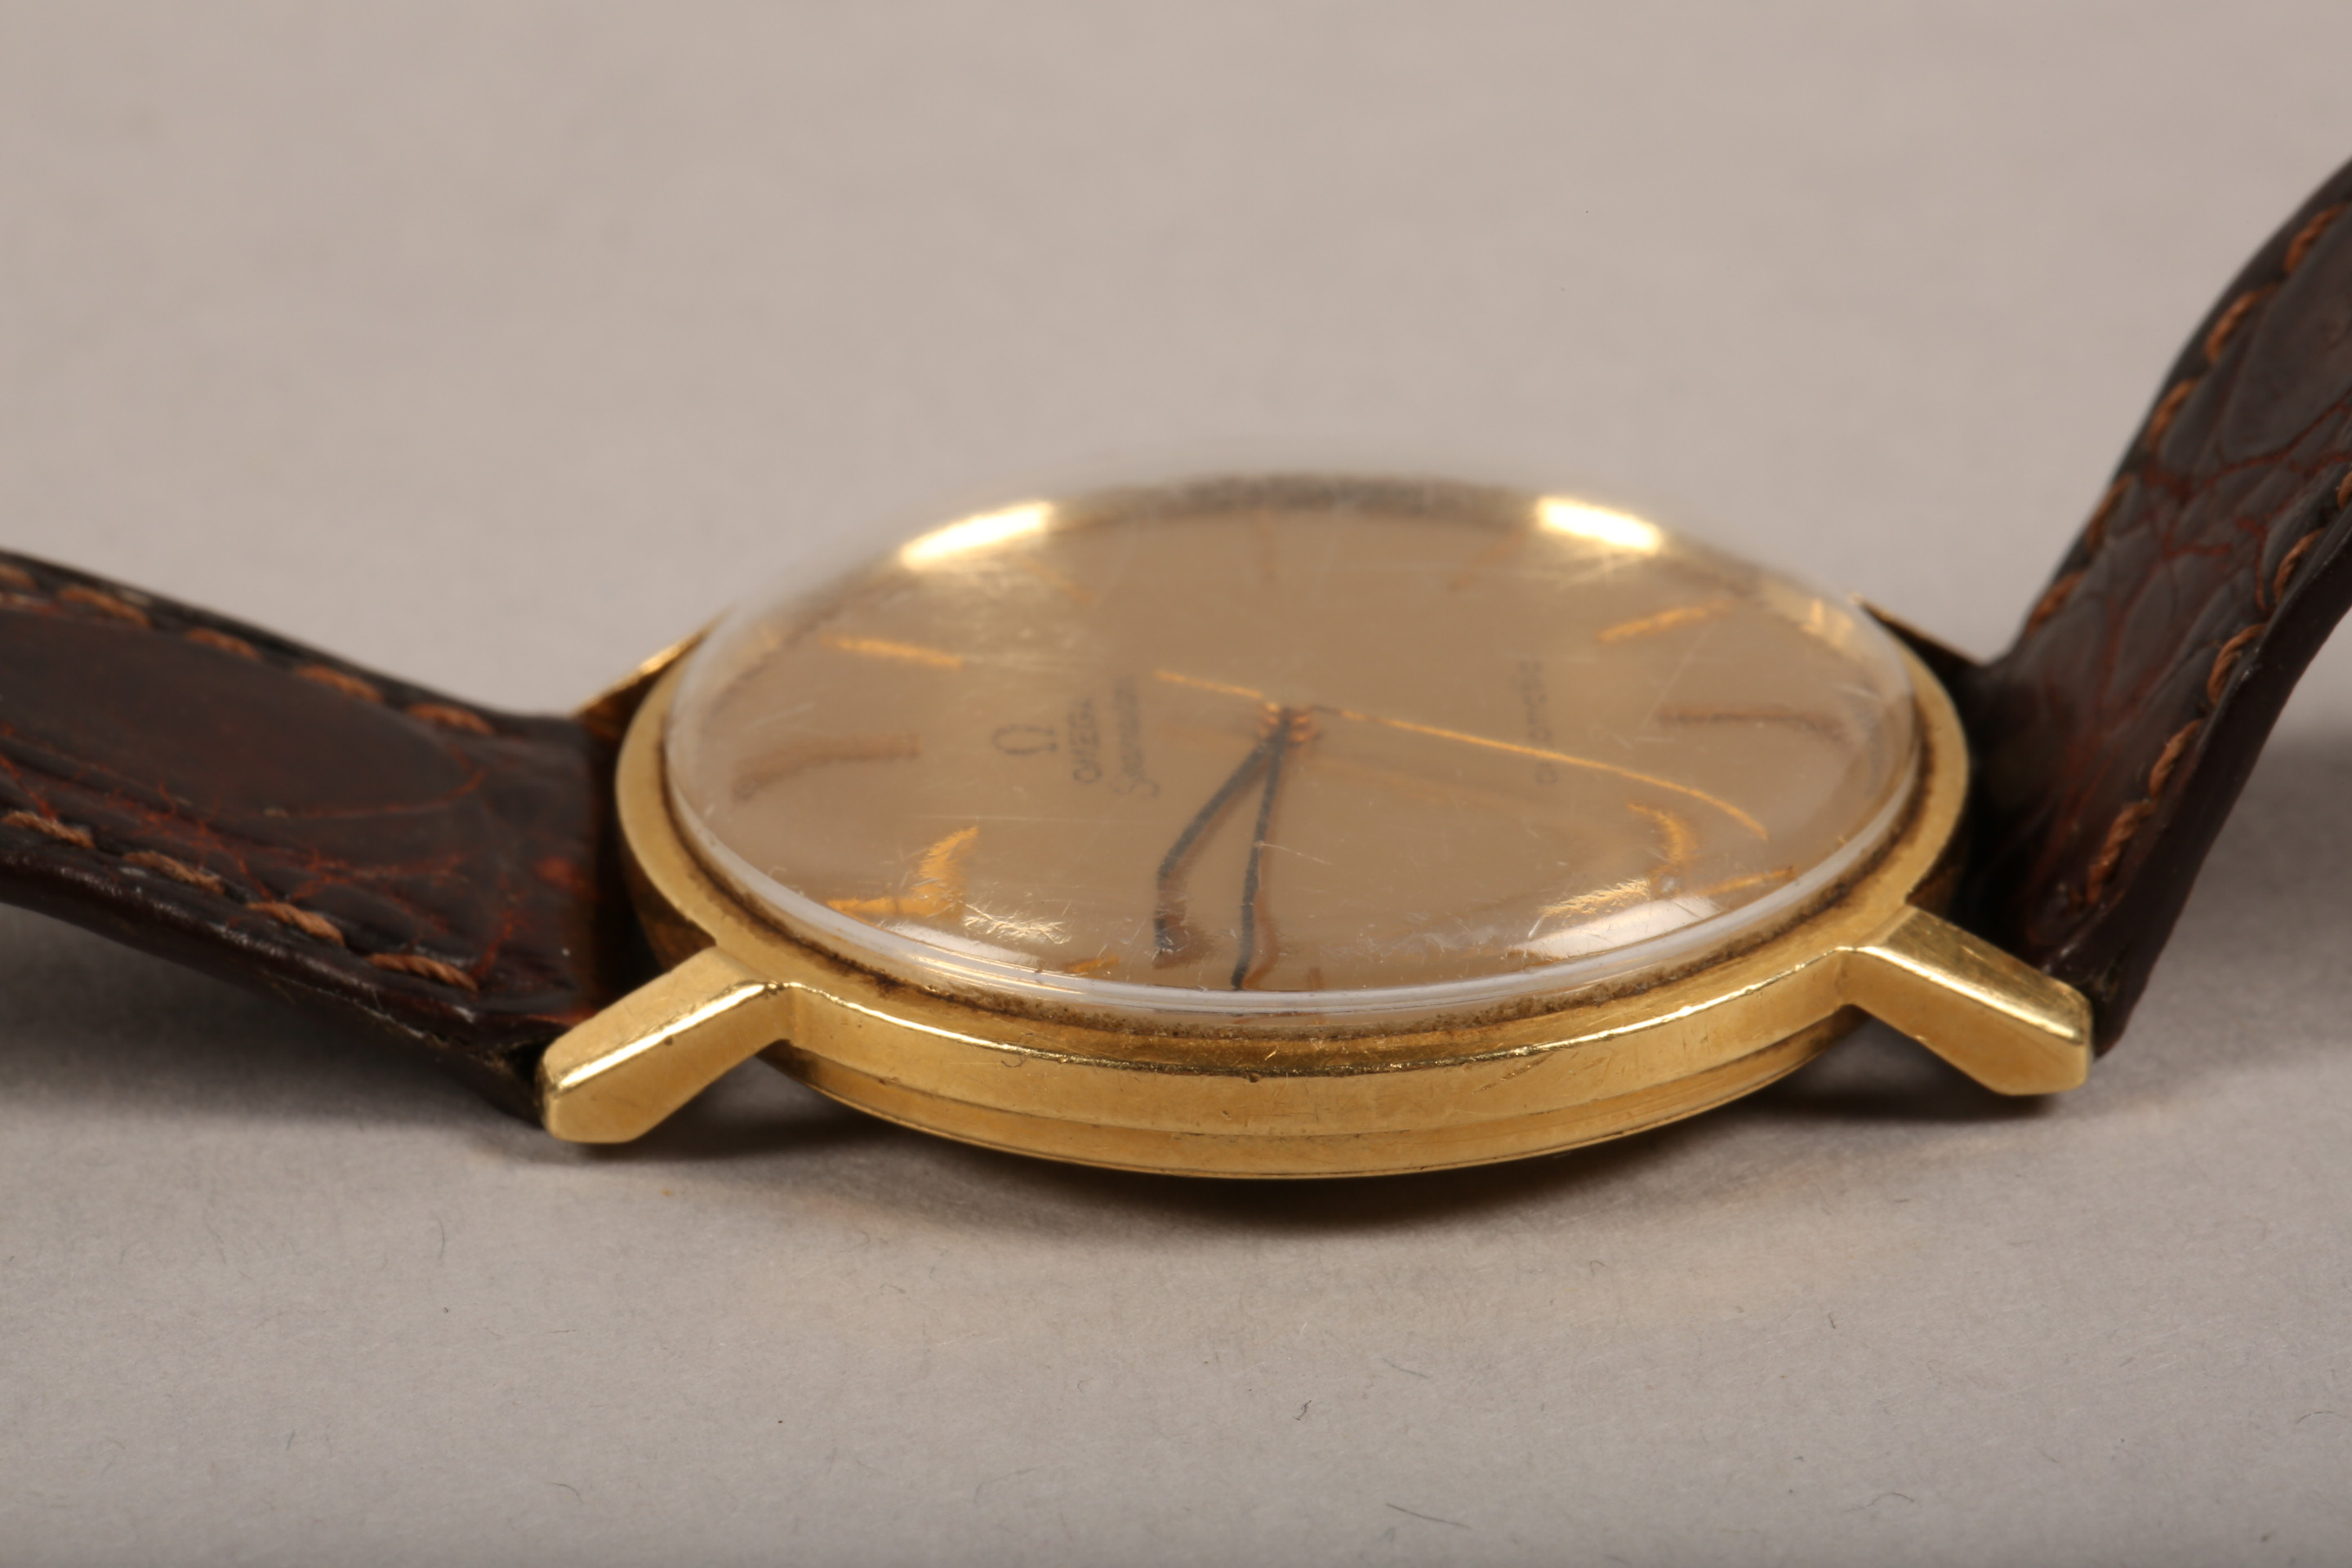 Gents 9 carat gold Omega Seamaster automatic wrist watch, dial with hour markers and sweeping - Image 9 of 10